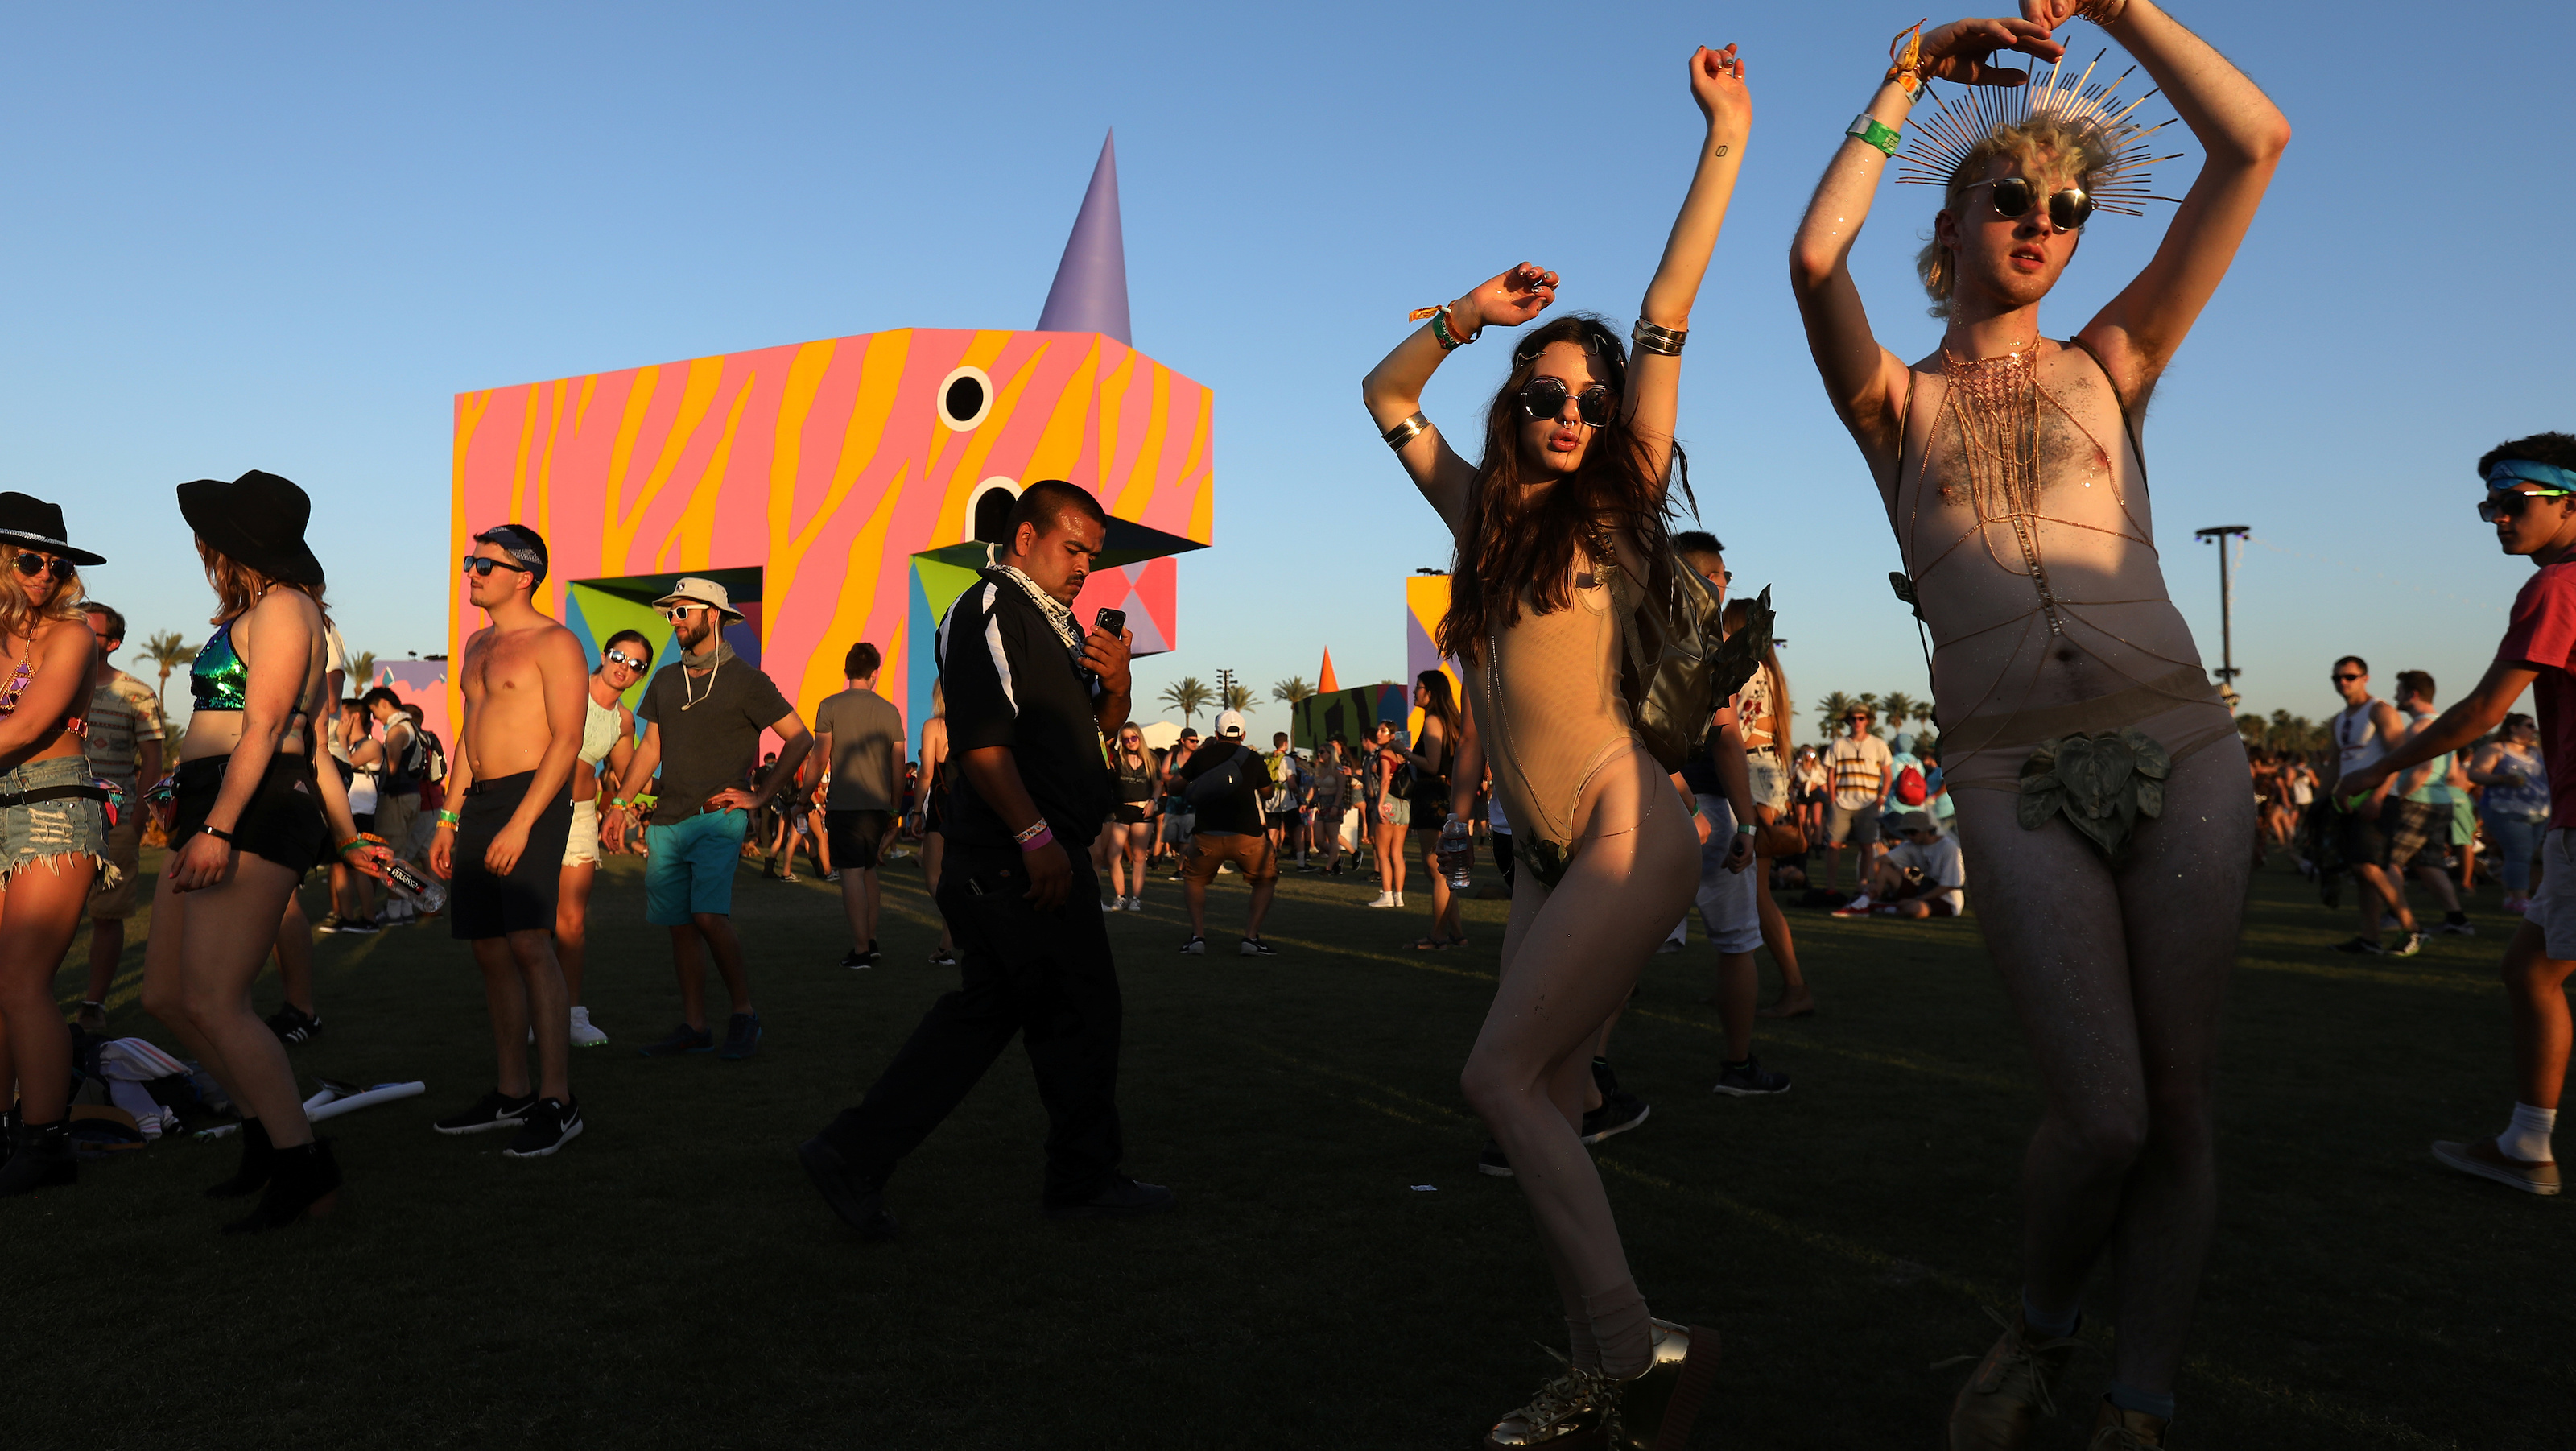 People dance on the opening day of the Coachella Valley Music and Arts Festival in Indio, California, U.S. April 14, 2017.   REUTERS/Carlo Allegri - RTS12DN4